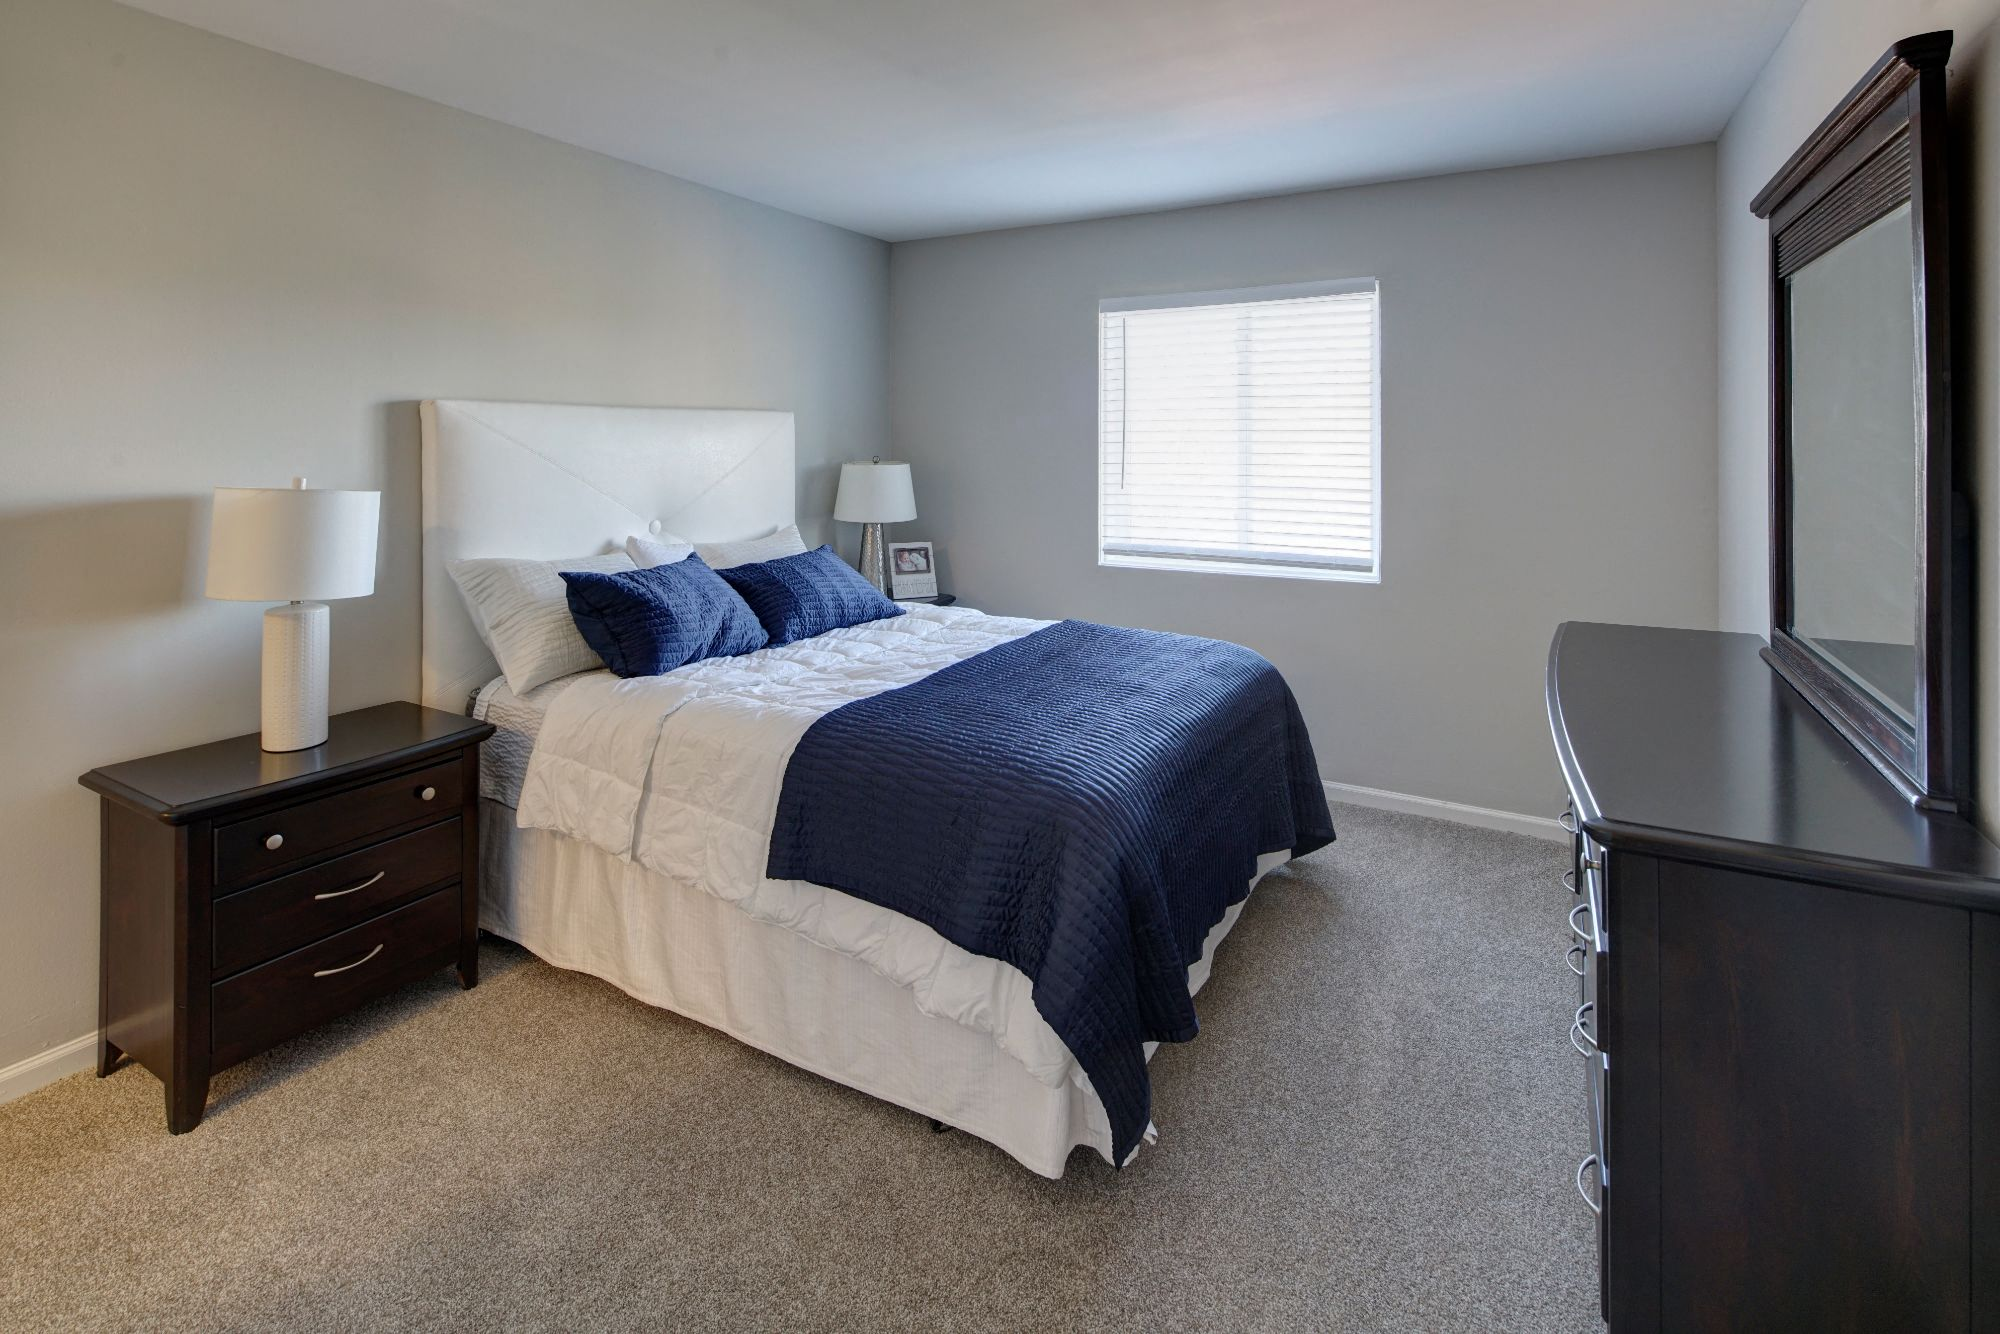 Spacious Bedroom With Comfortable Bed at Carol Stream Crossing, Illinois